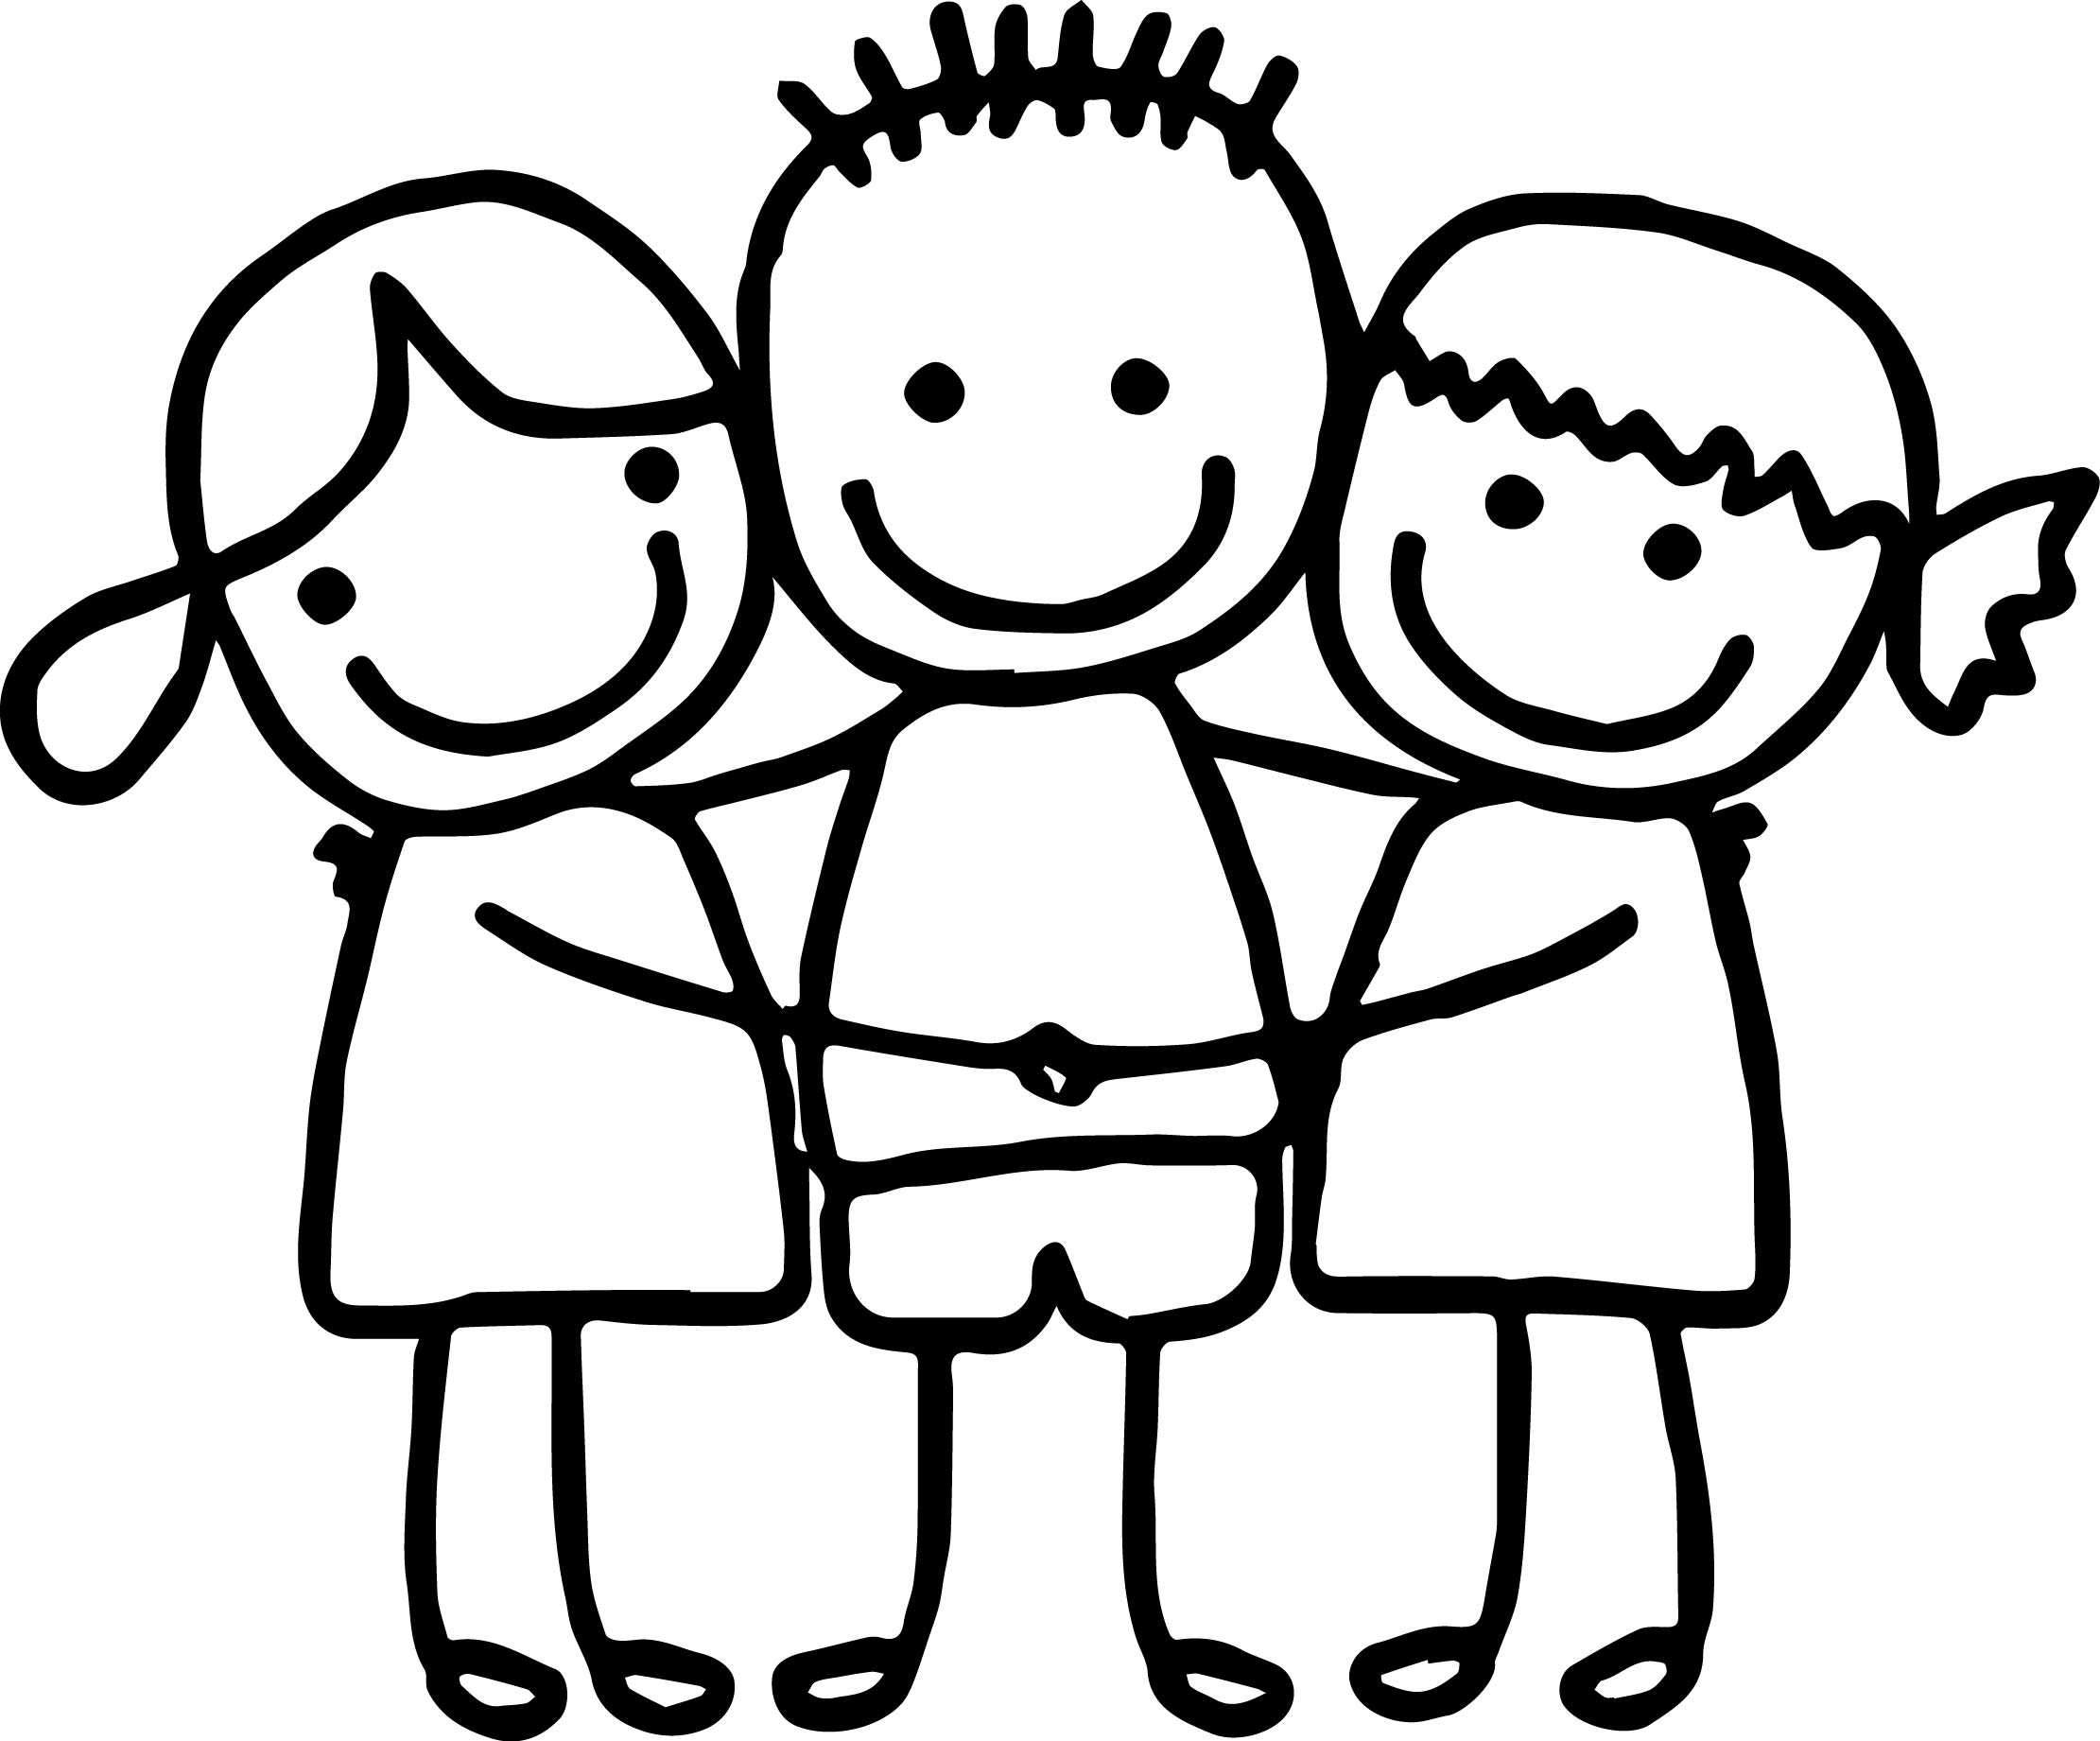 2221x1841 Profitable Coloring Pages About Friendship Best Friend To Print